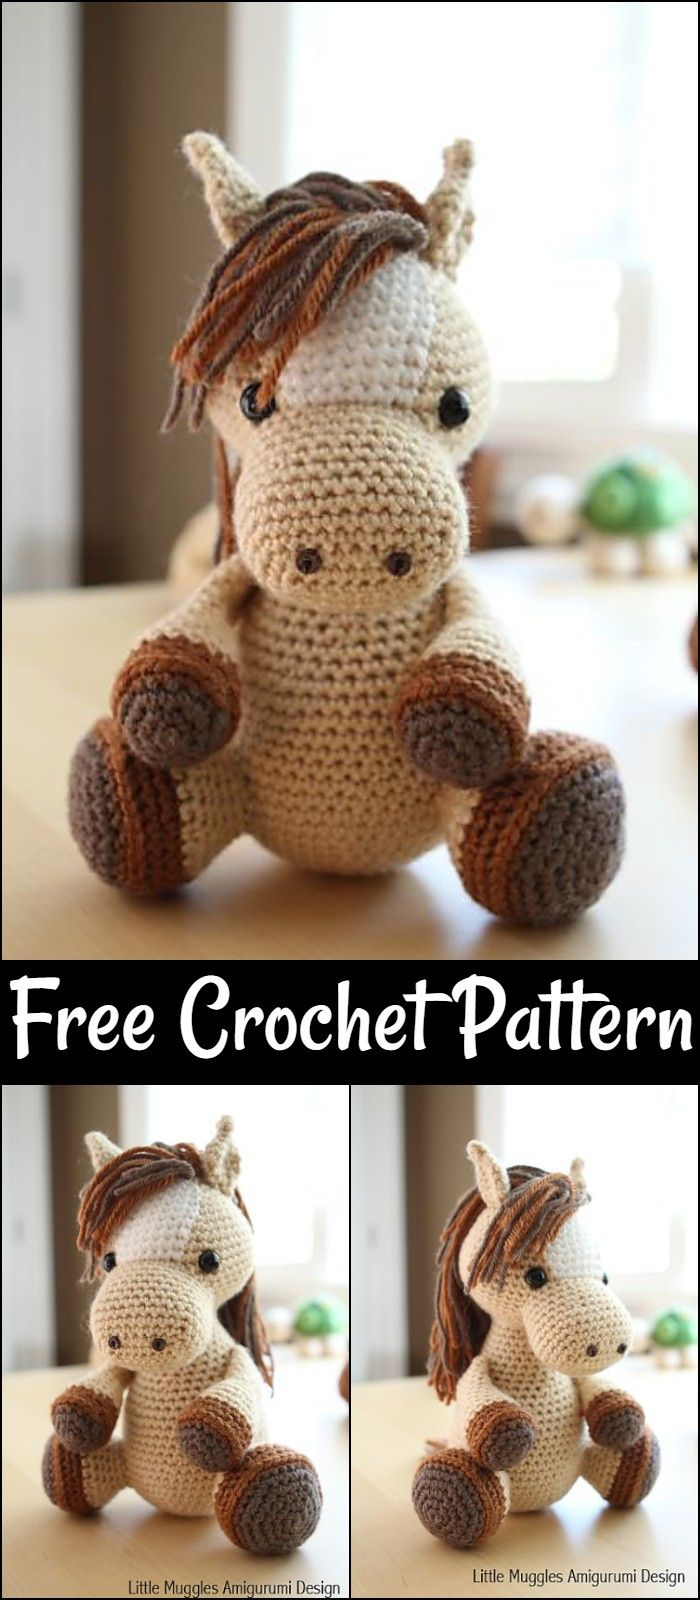 Farm Horse crochet pattern - Amigurumi Today | 1600x700